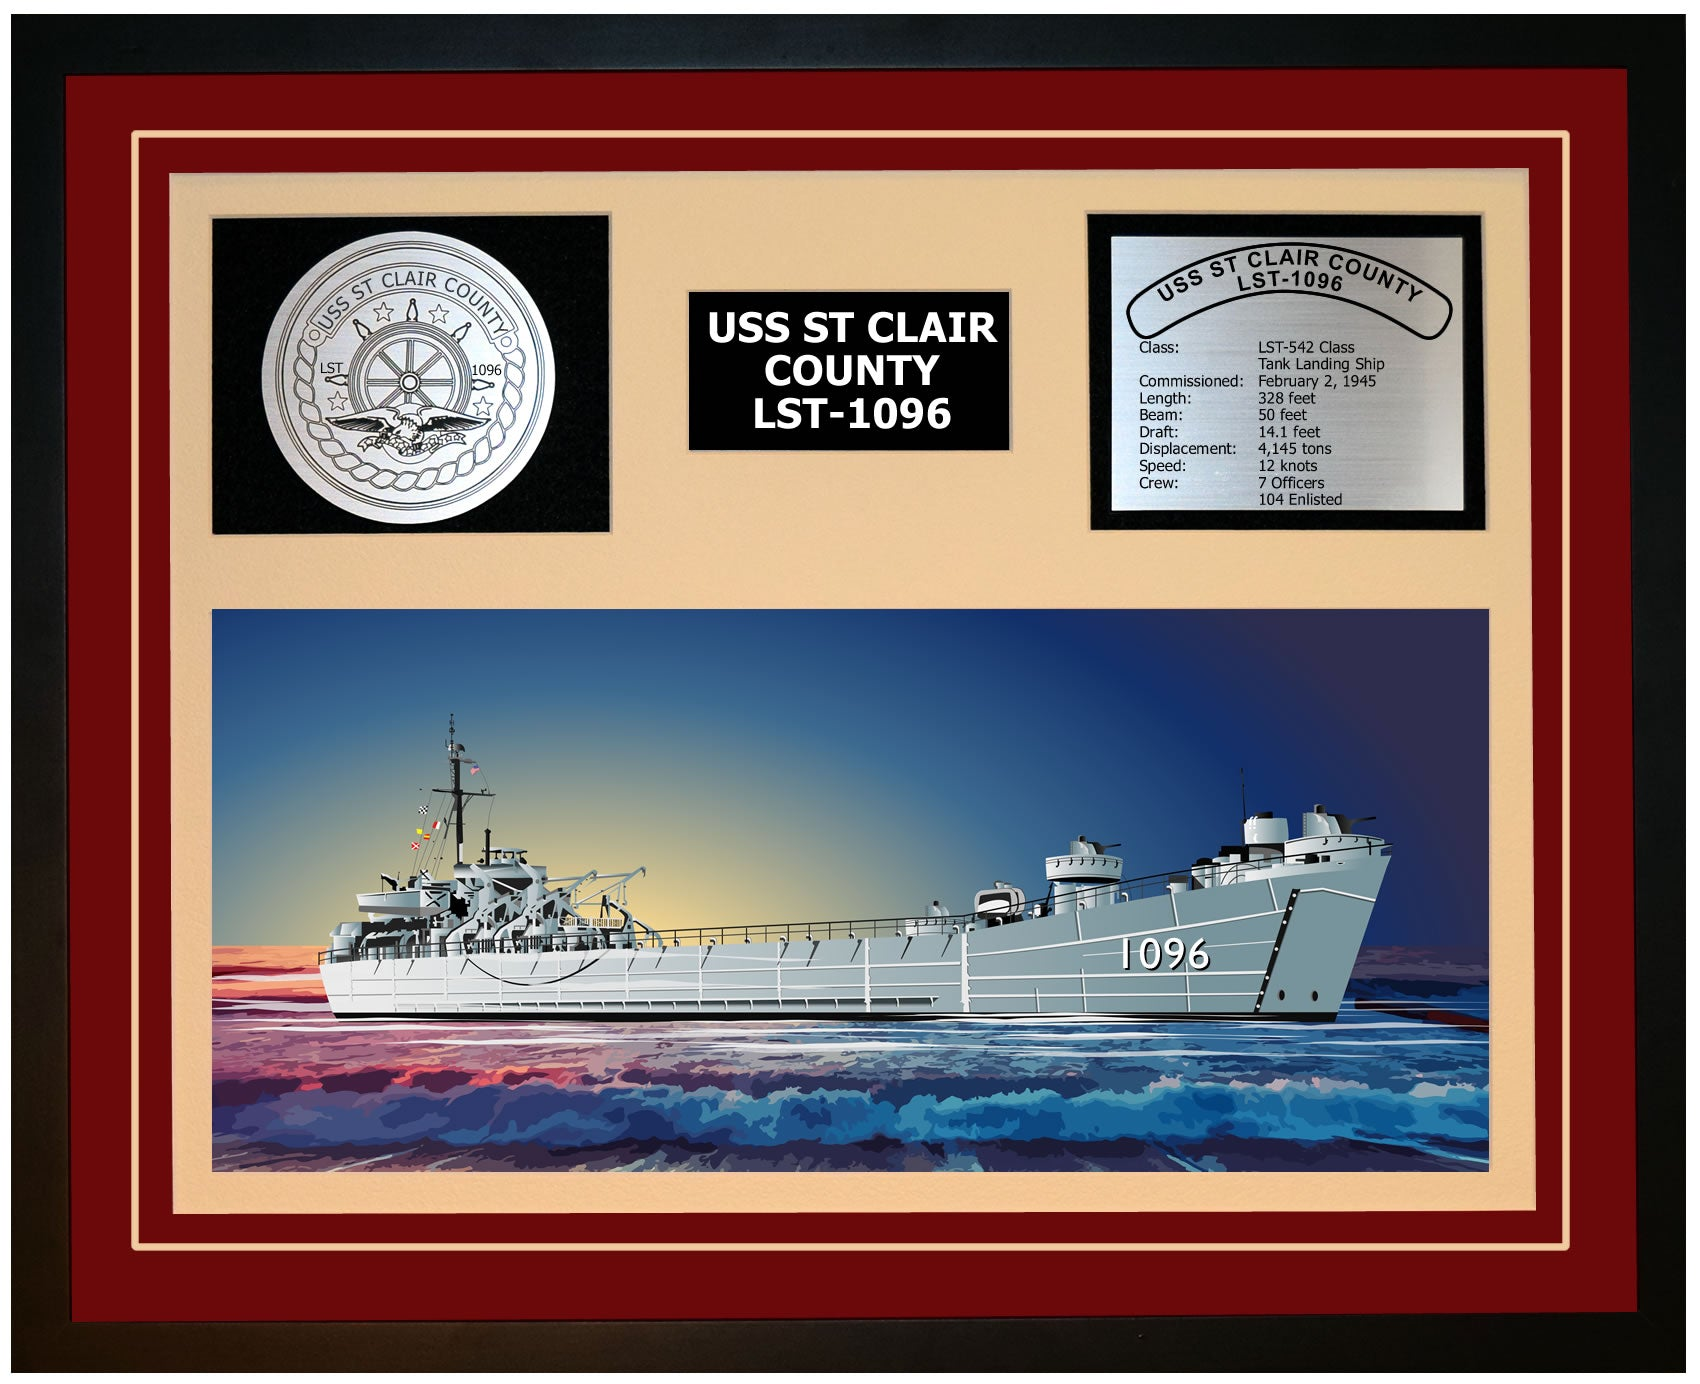 USS ST CLAIR COUNTY LST-1096 Framed Navy Ship Display Burgundy